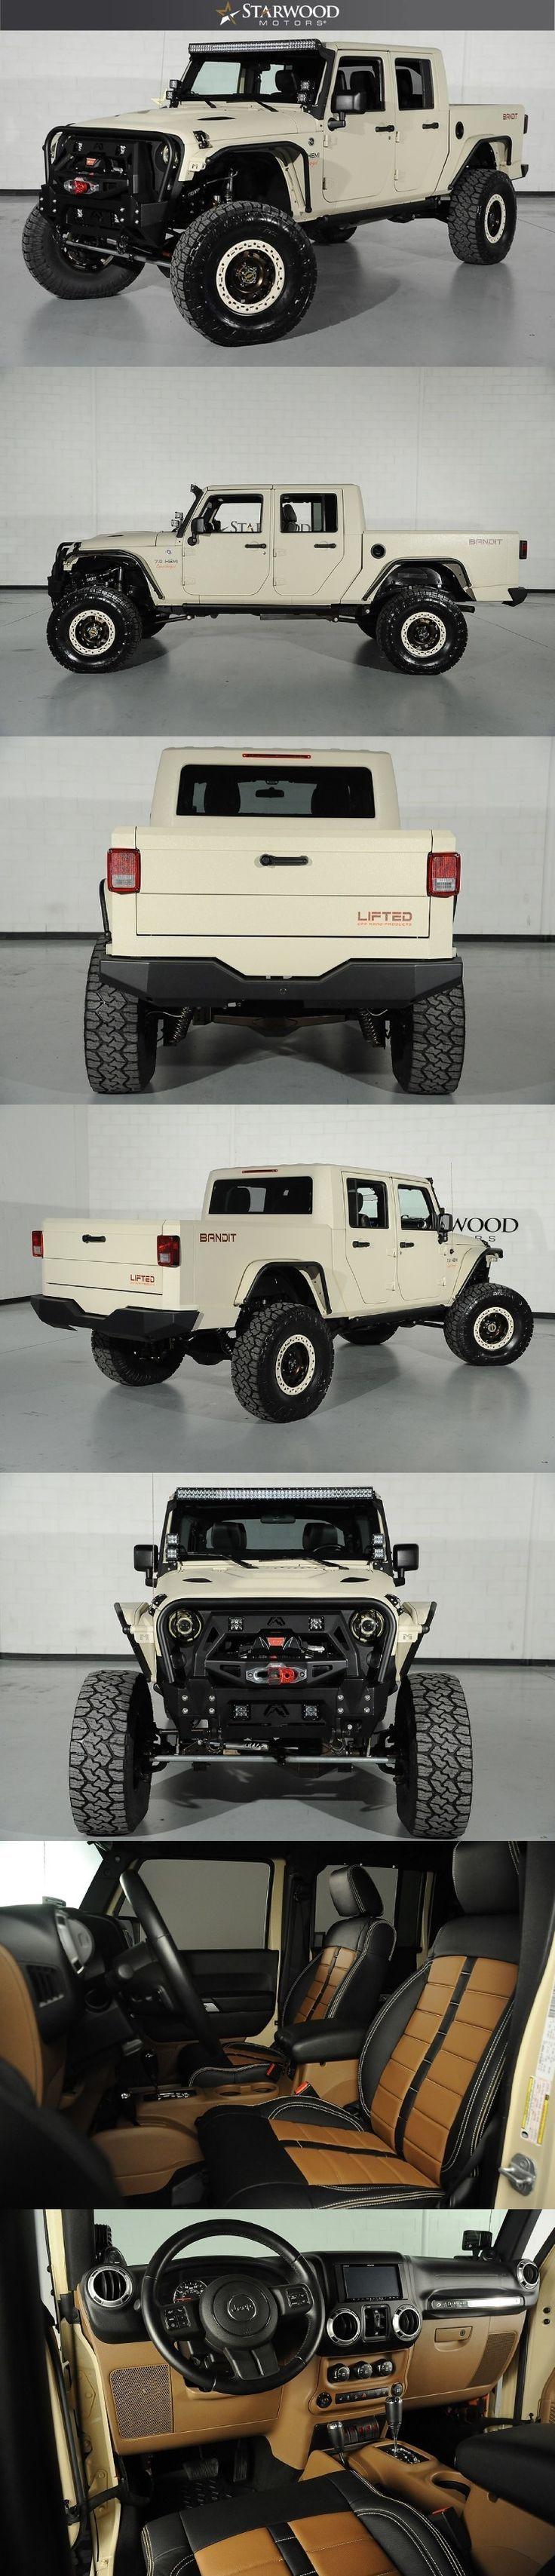 Nice jeep 2017 starwood motors bandit jeep if only